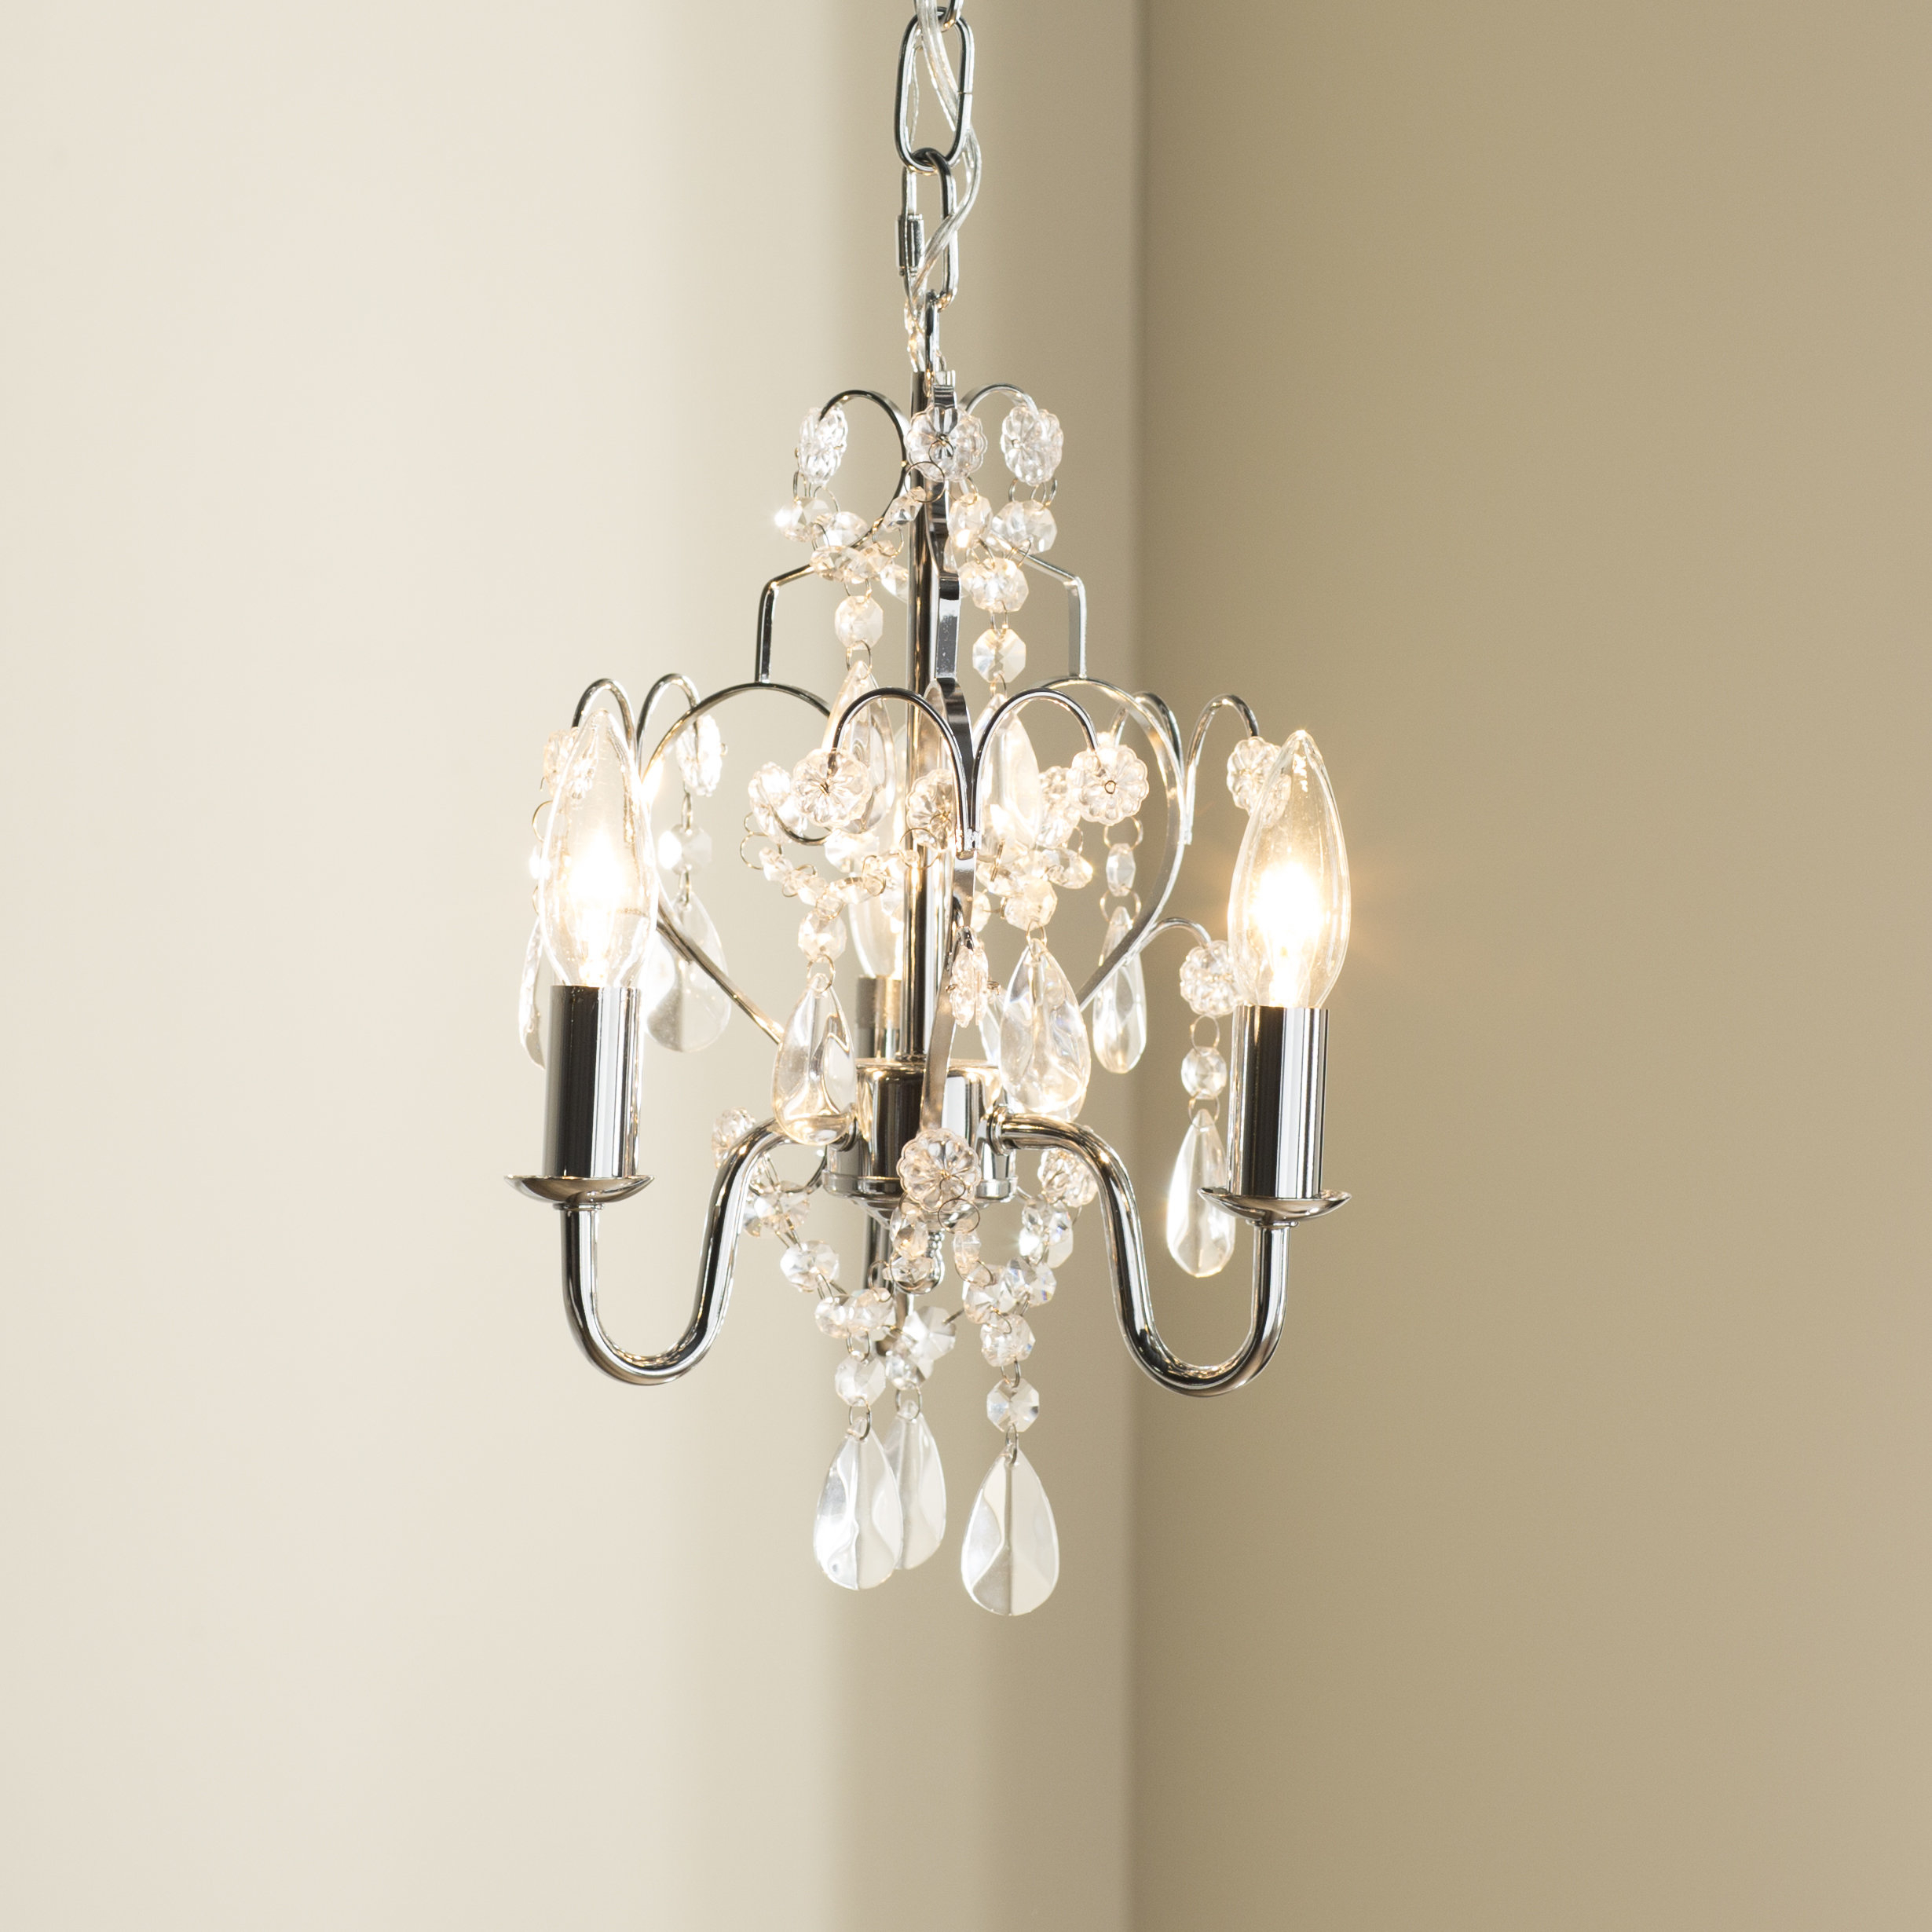 Dagnall 3 Light Candle Style Chandelier Pertaining To Aldora 4 Light Candle Style Chandeliers (Gallery 27 of 30)